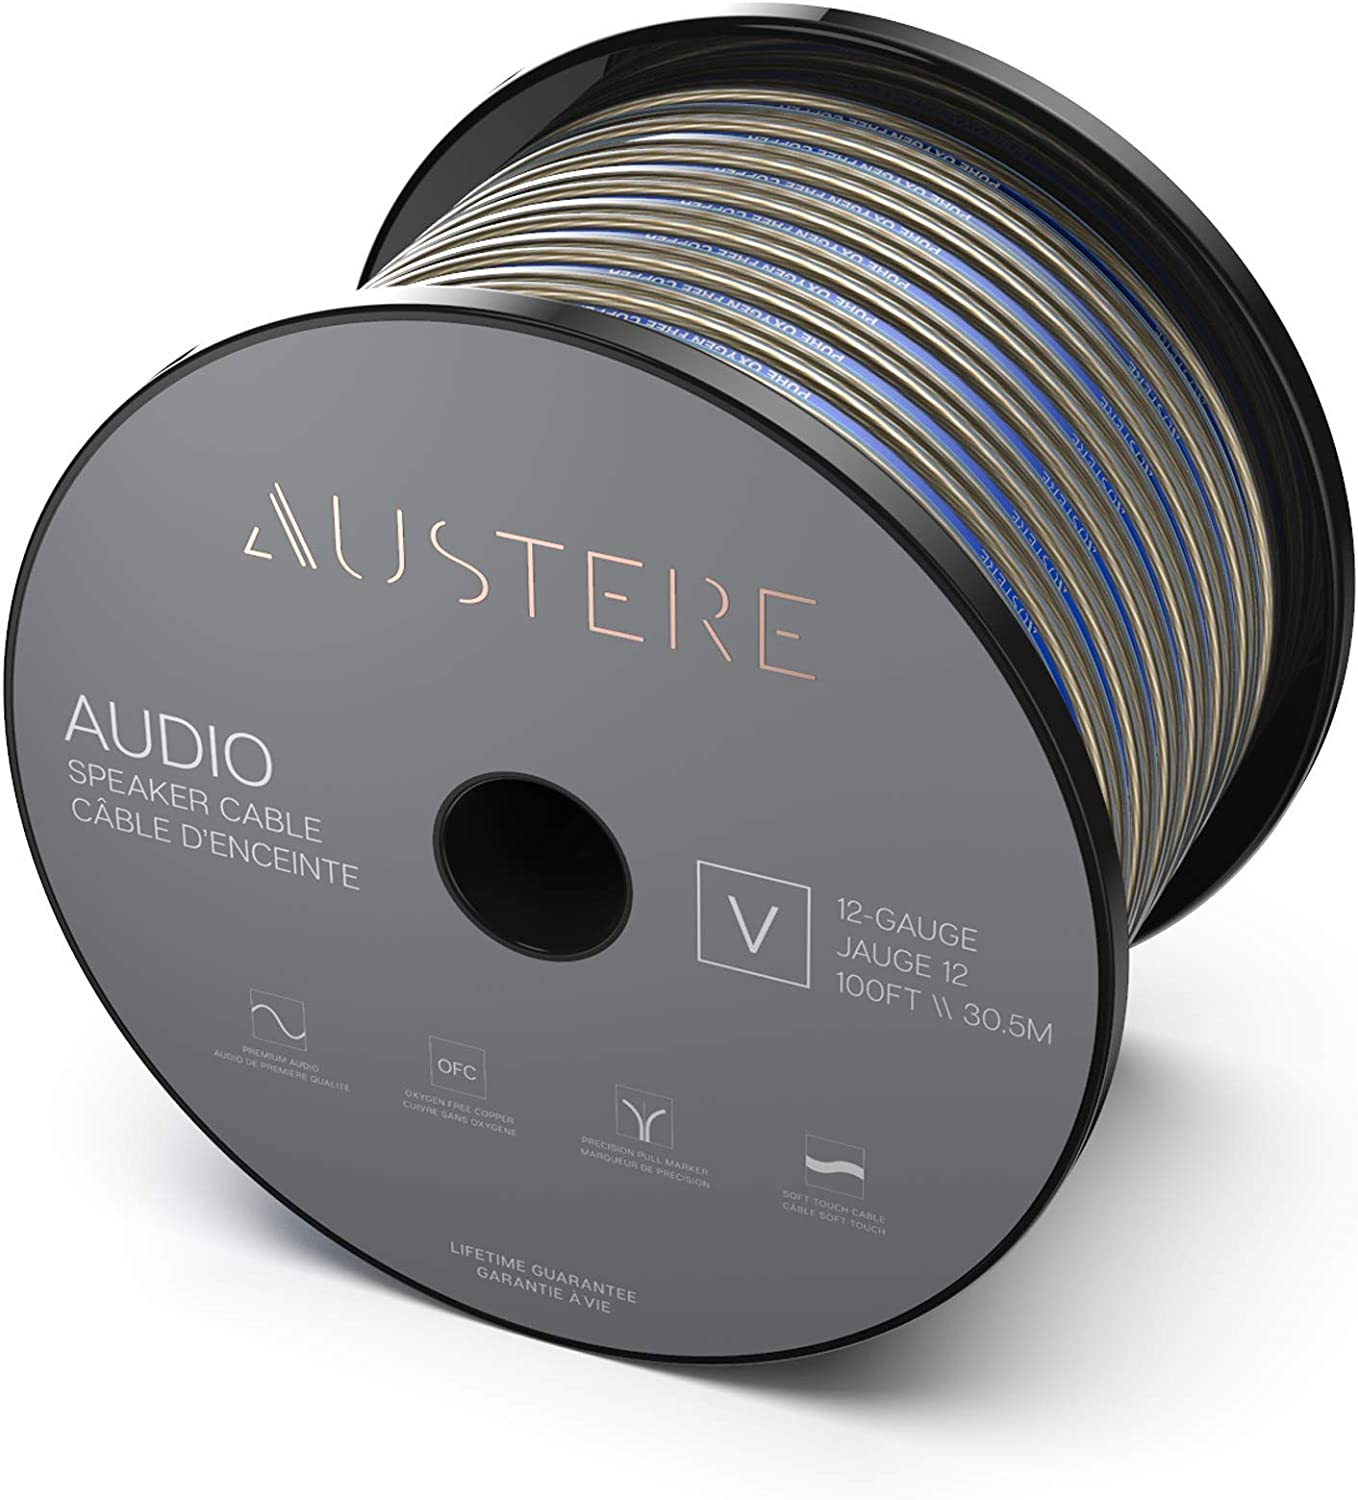 Austere V Series 12-Gauge 100ft Speaker Cable with Pure Oxygen Free Copper /& Precision Pull Marker